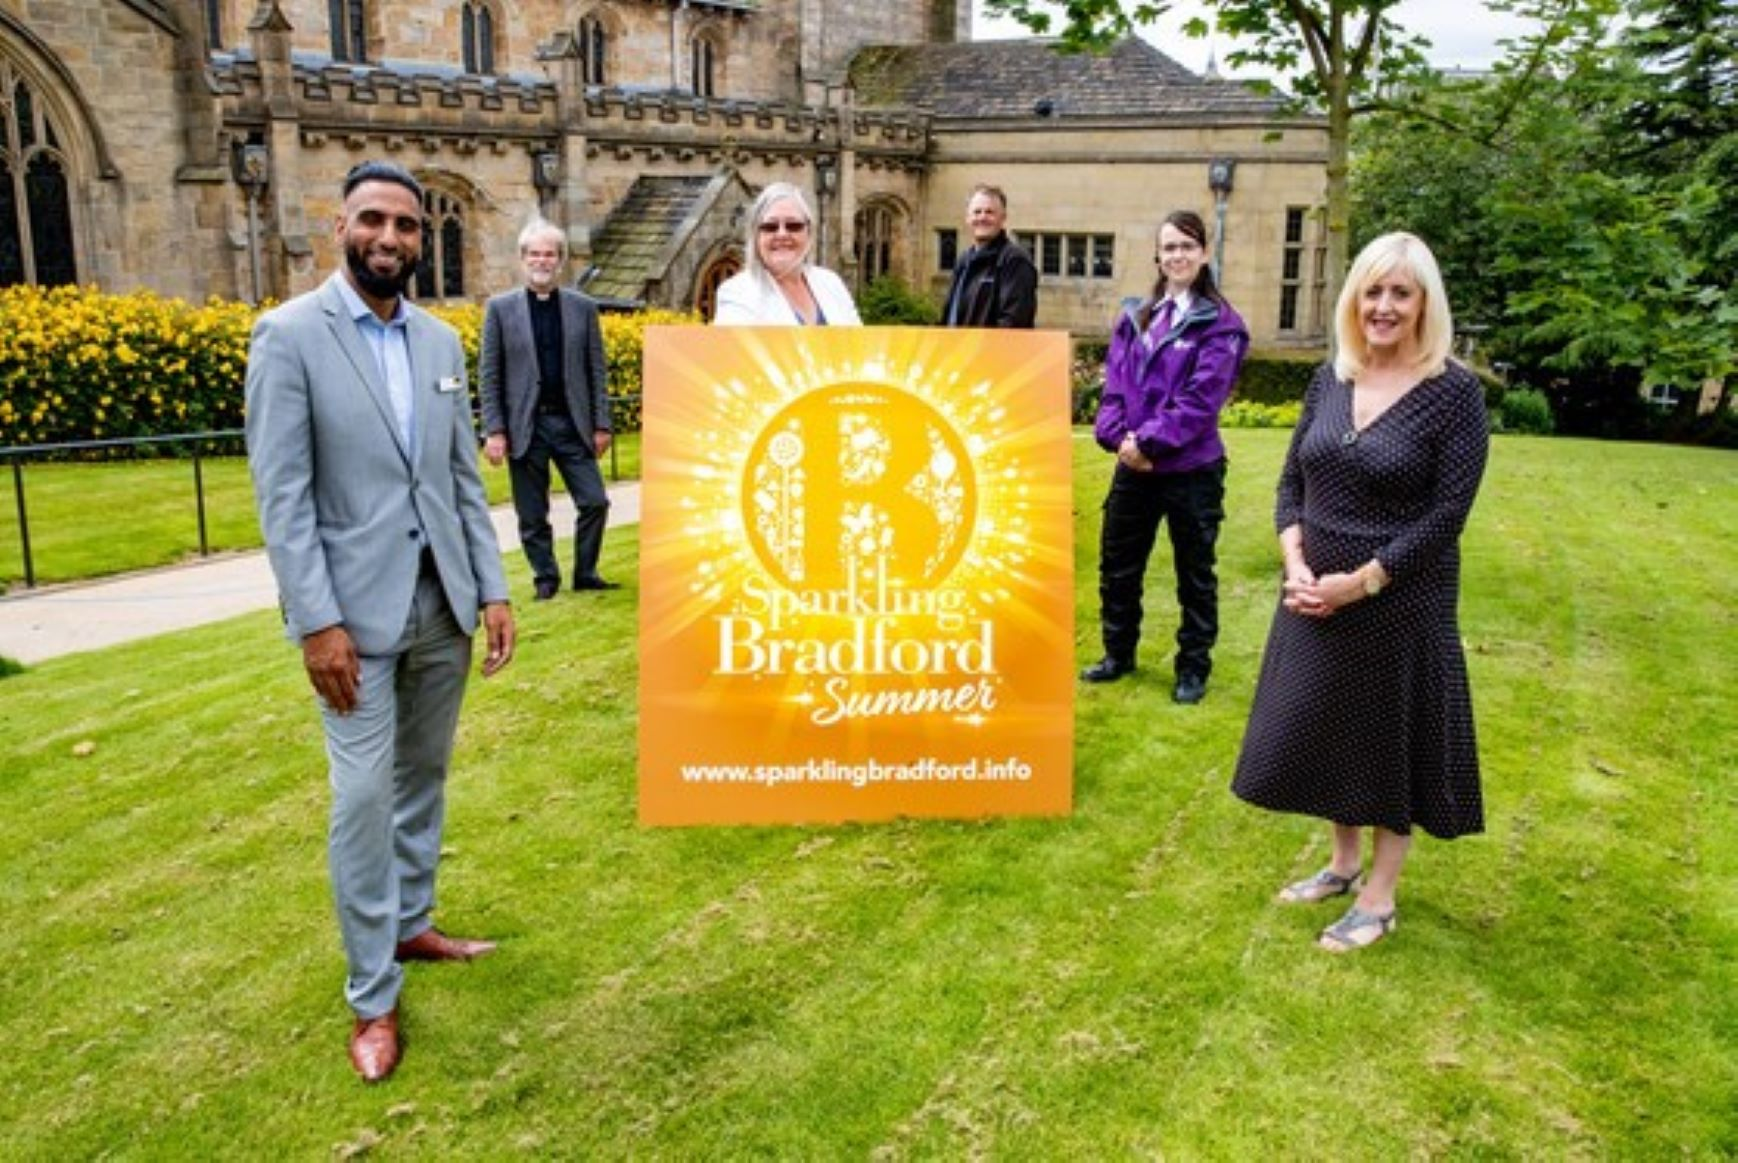 Sparkling Bradford Summer Campaign has Launched with New Website